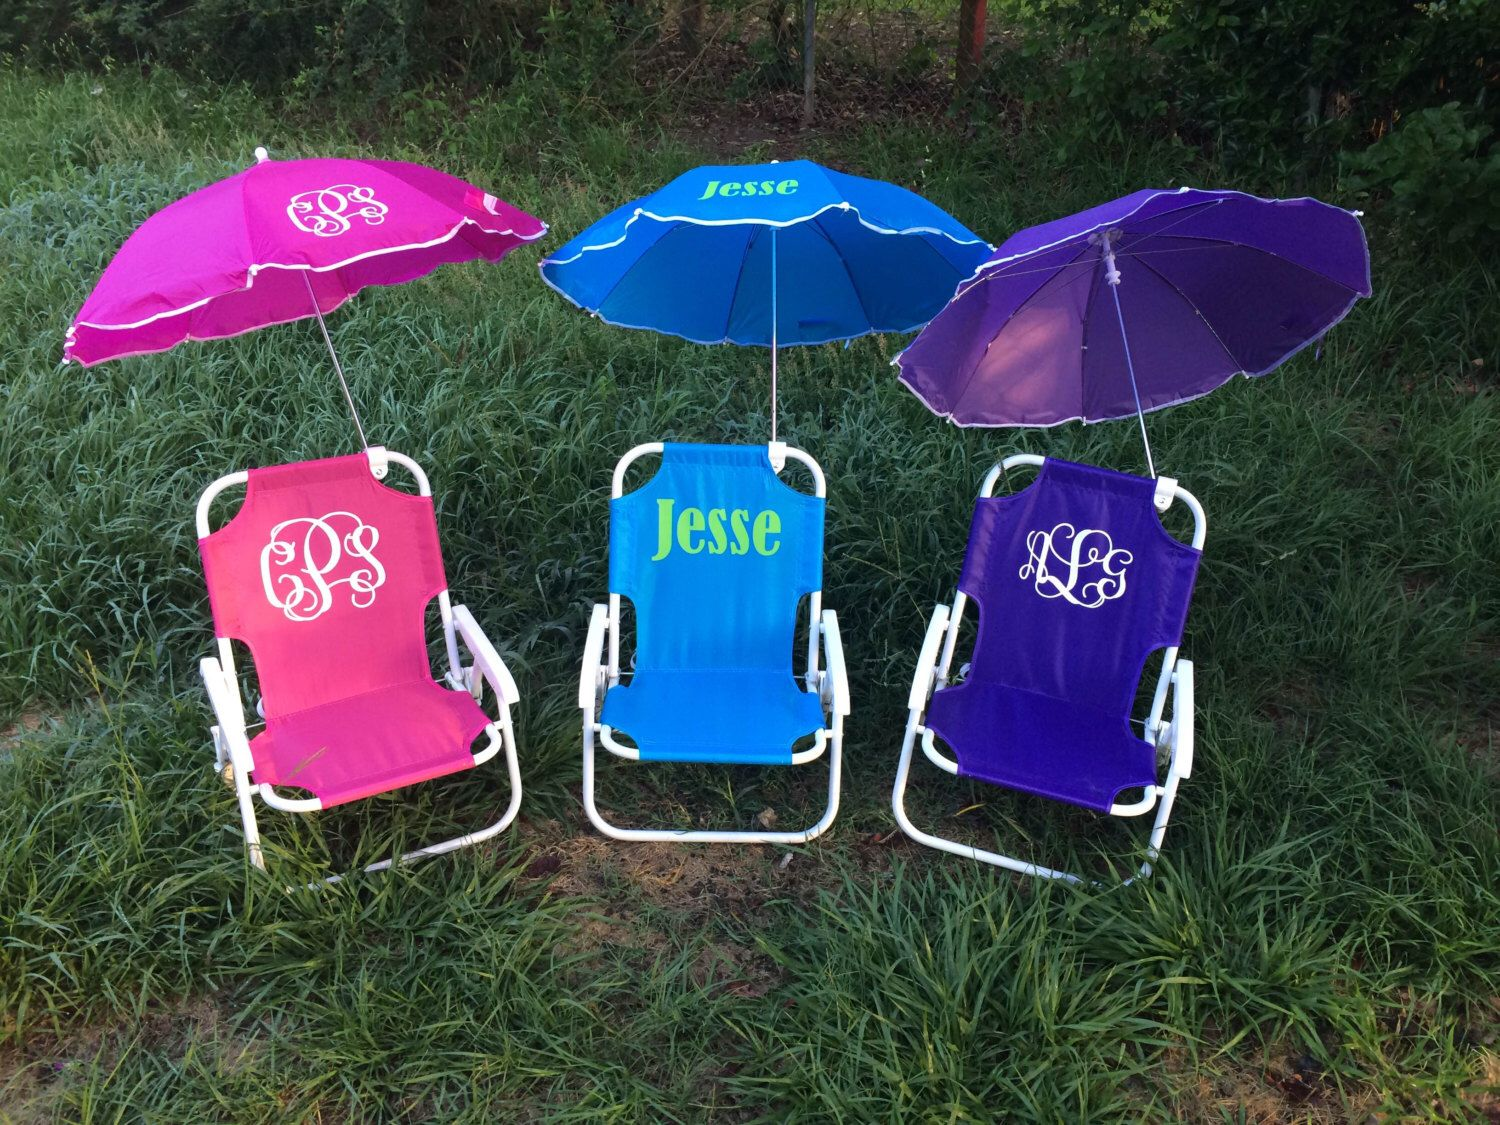 Delicieux Monogrammed Kids Beach Chair With Umbrella By Southernsassbybrit On Etsy  Https://www.etsy.com/listing/179686066/monogrammed Kids Beach Chair With